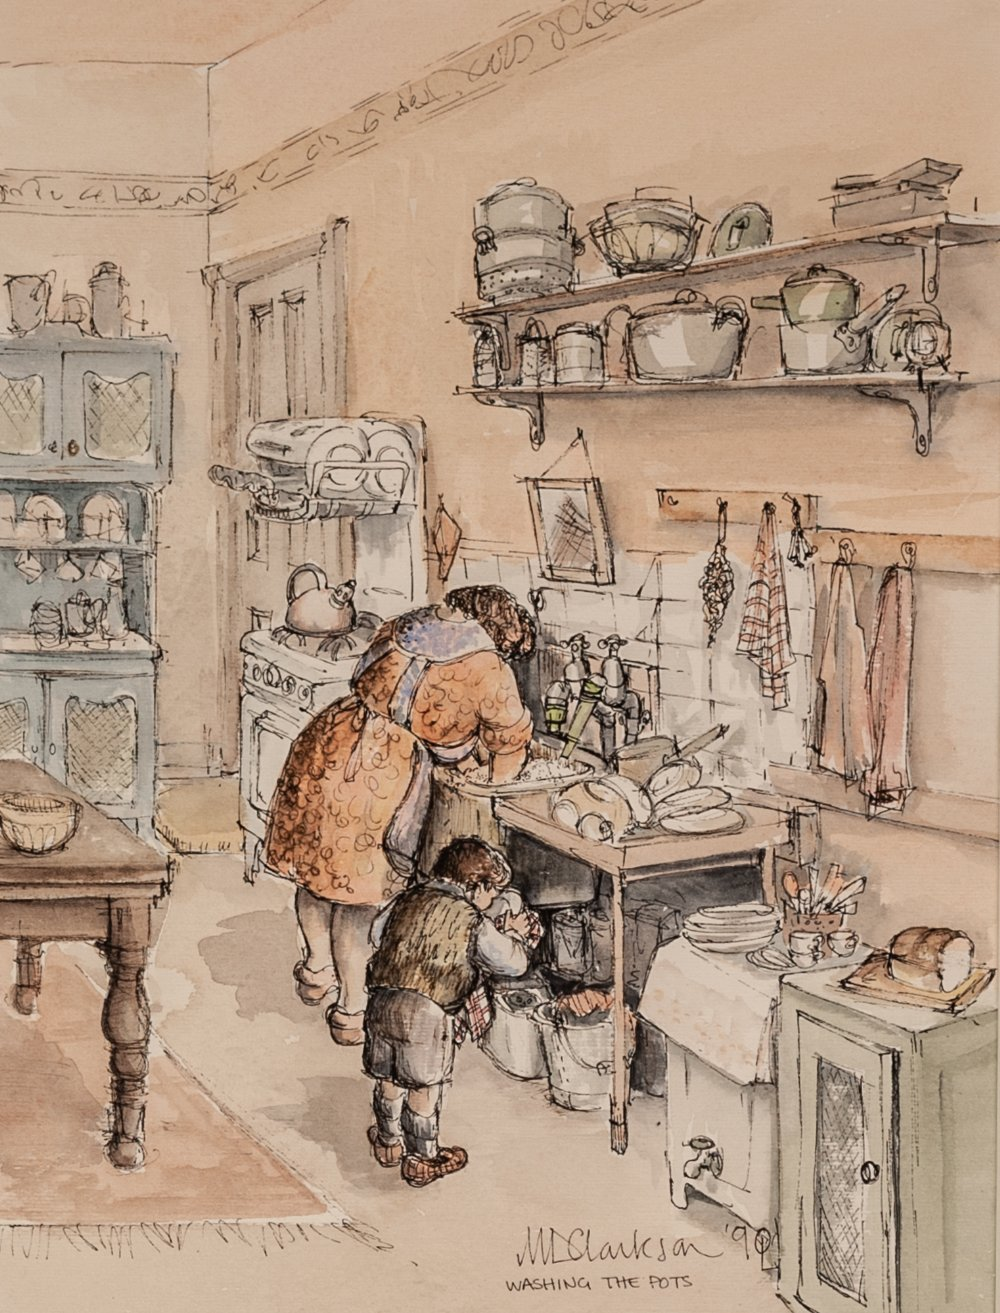 MARGARET CLARKSON (b. 1941) PEN AND BLACK INK AND WATERCOLOUR 'Washing the Pots' Signed, inscribed